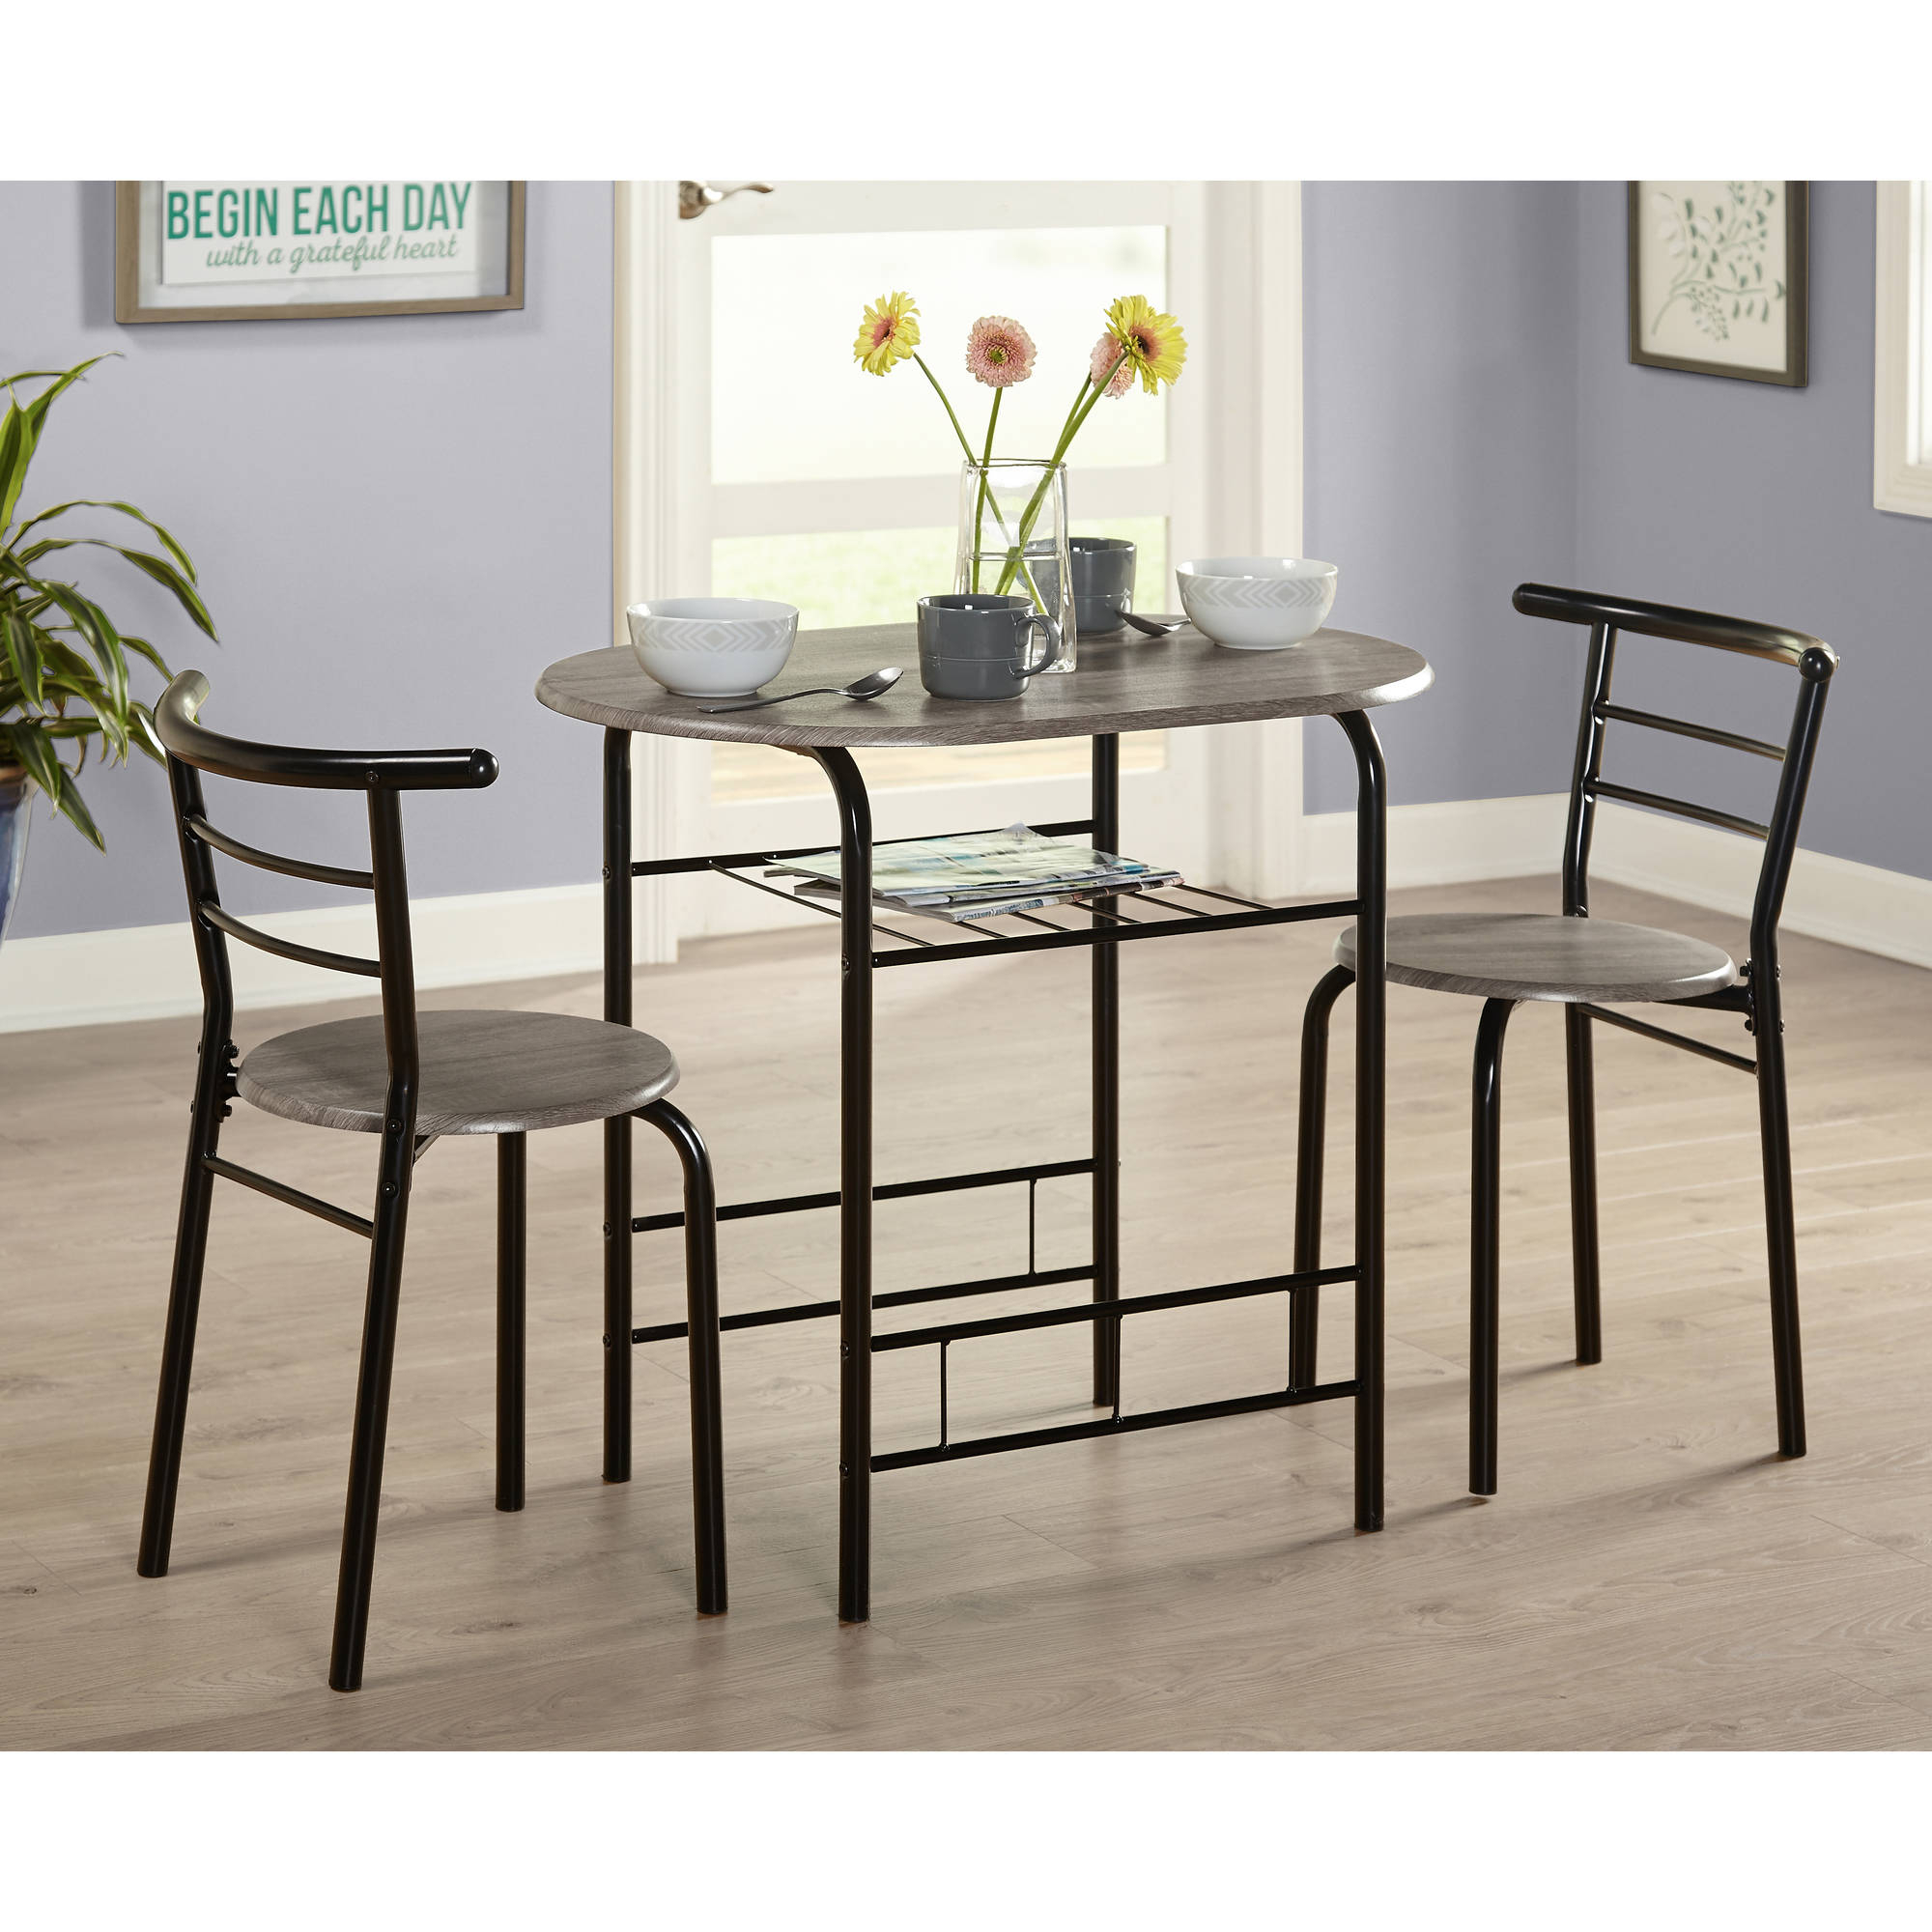 Tms 3 Piece Bistro Dining Set Throughout Current Rossiter 3 Piece Dining Sets (Photo 18 of 20)